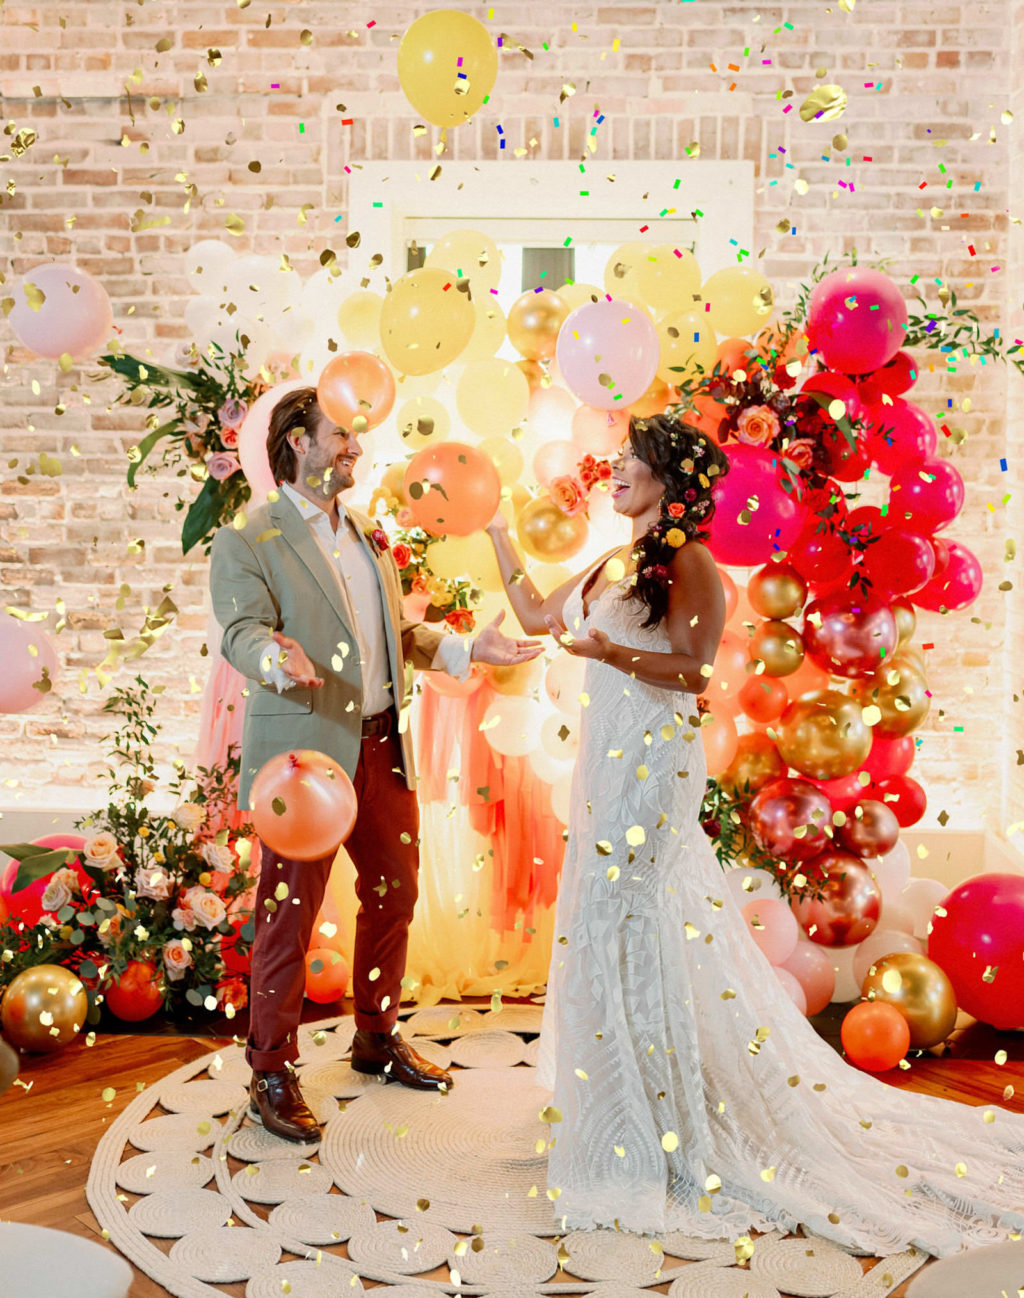 Whimsical and Colorful Bride and Groom Gold Confetti Photo with Orange, Pink, Yellow and Gold Balloon and Fringe Ceremony Backdrop   Tampa Bay Wedding Photographer Dewitt for Love   St. Pete Modern Industrial Wedding Venue Red Mesa Events